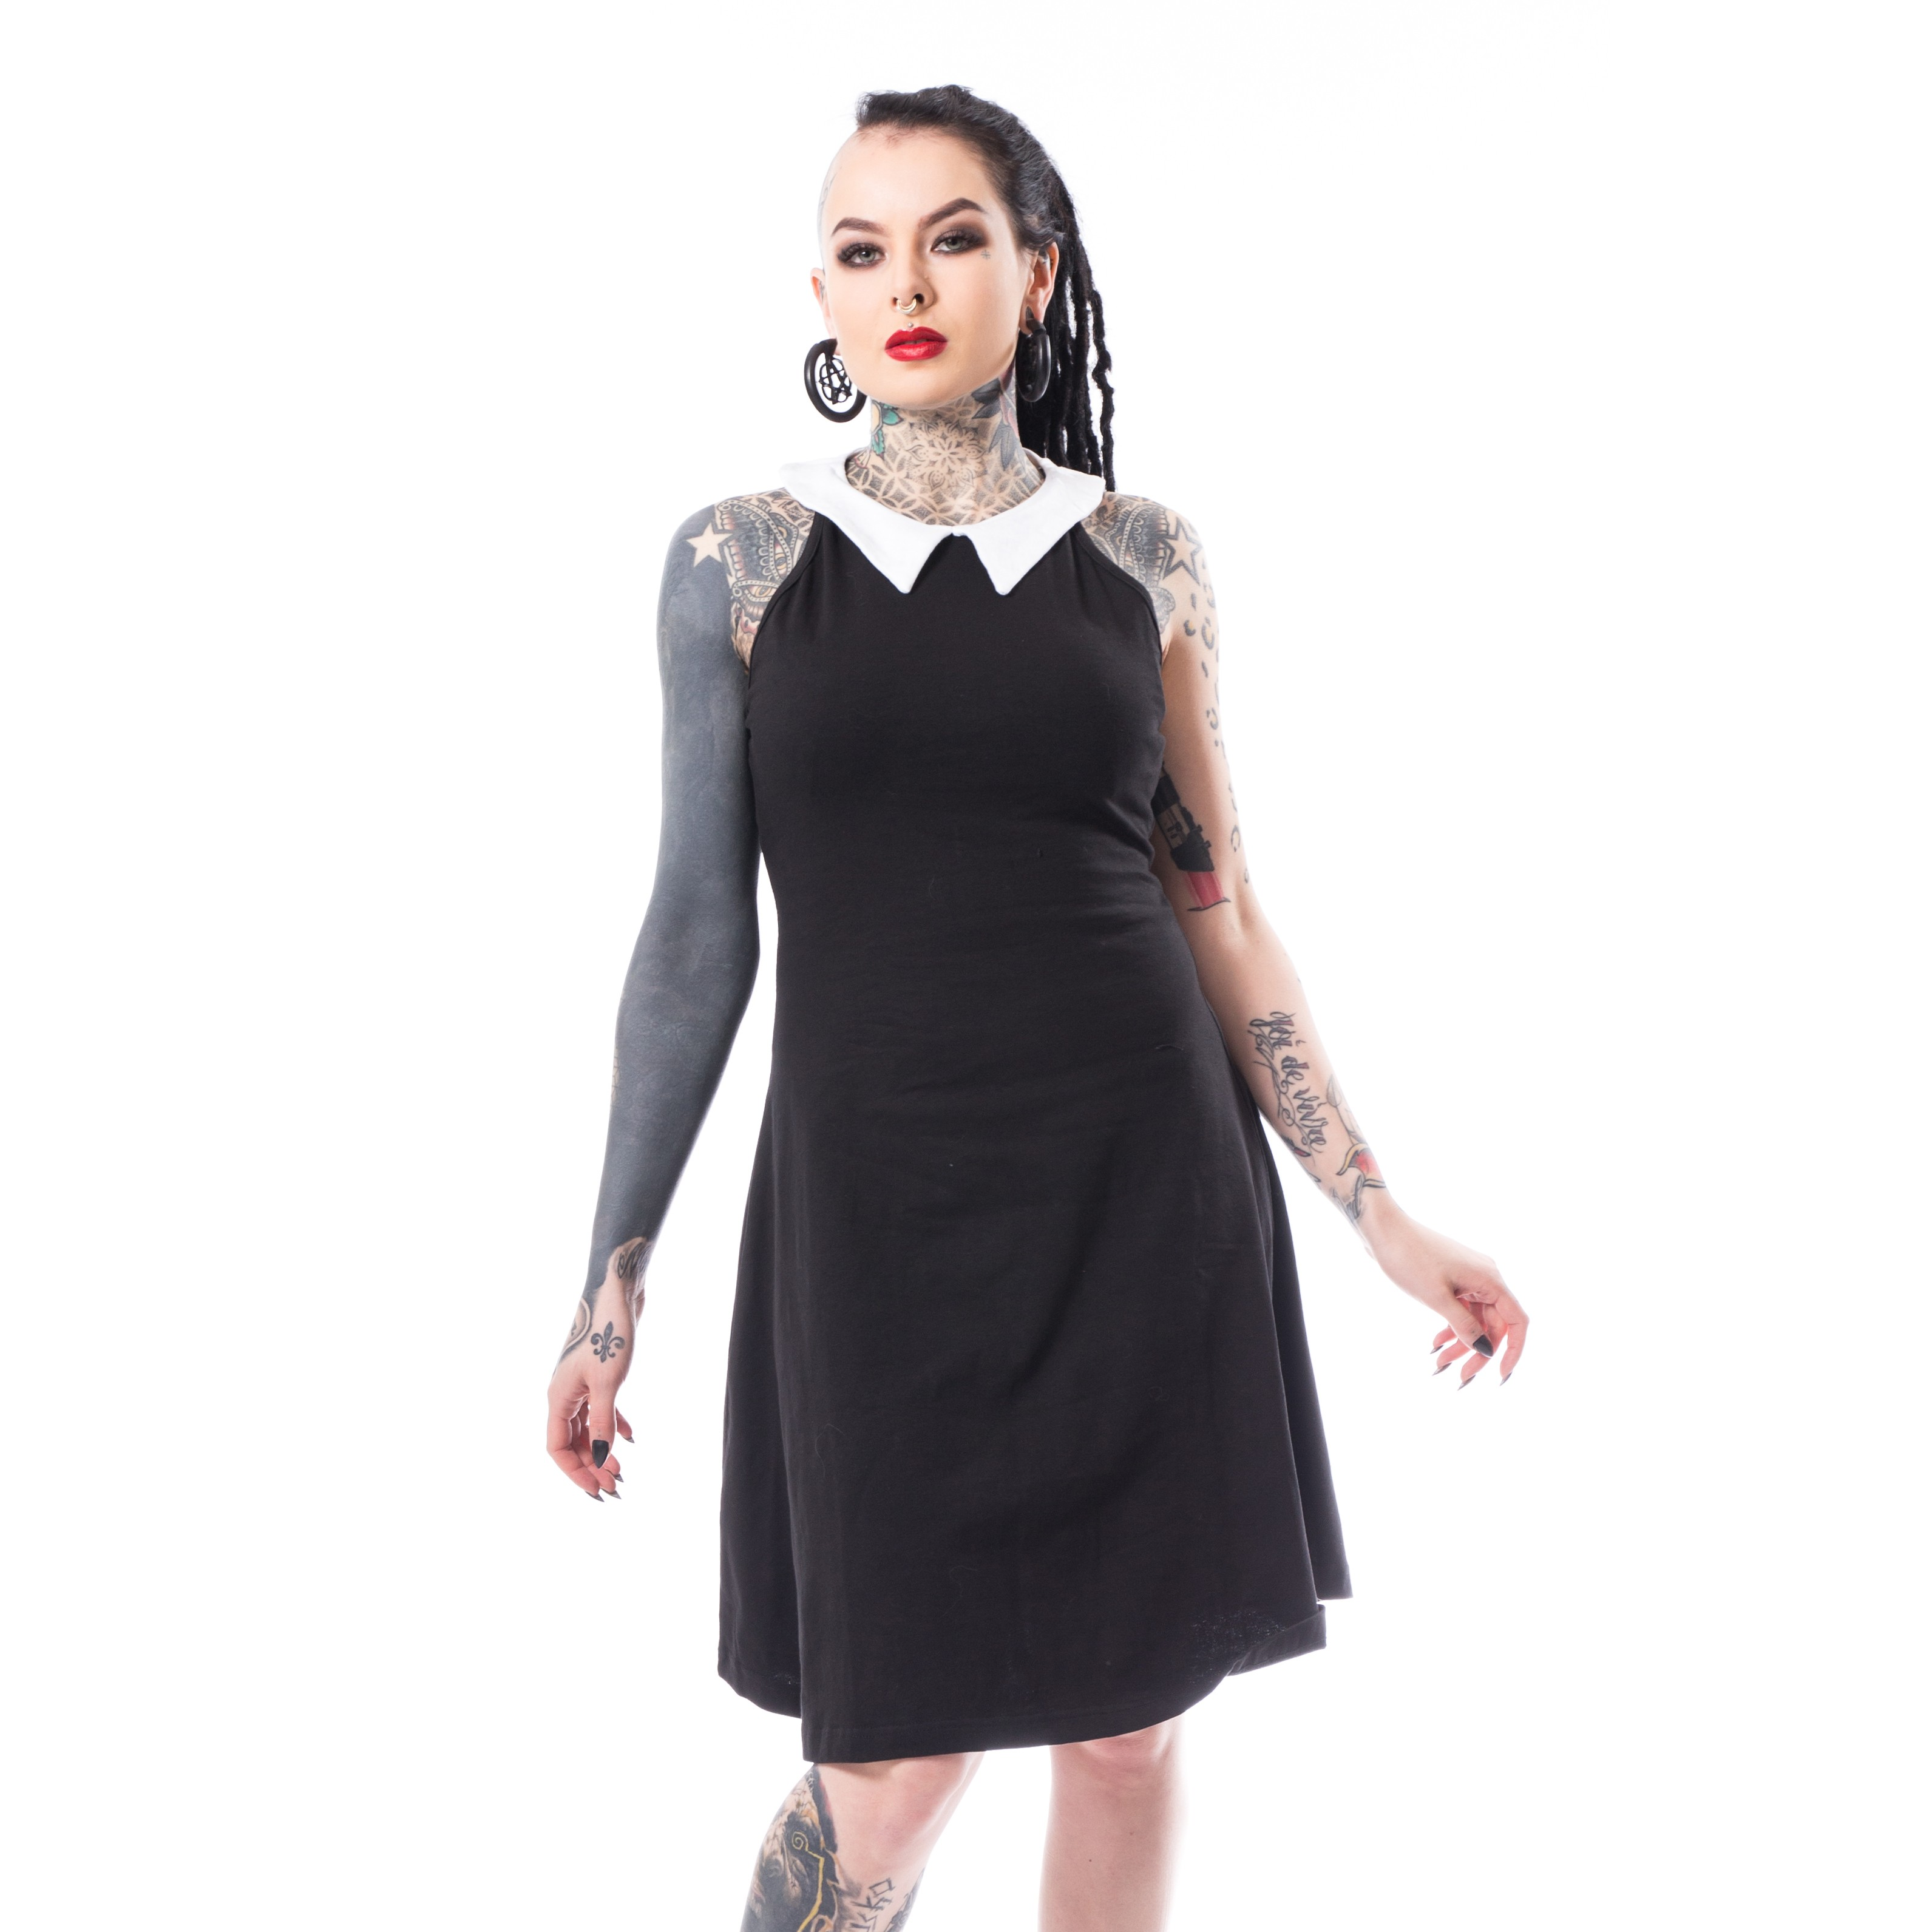 HEARTLESS - Louise Dress Ladies Black *NEW IN-a*